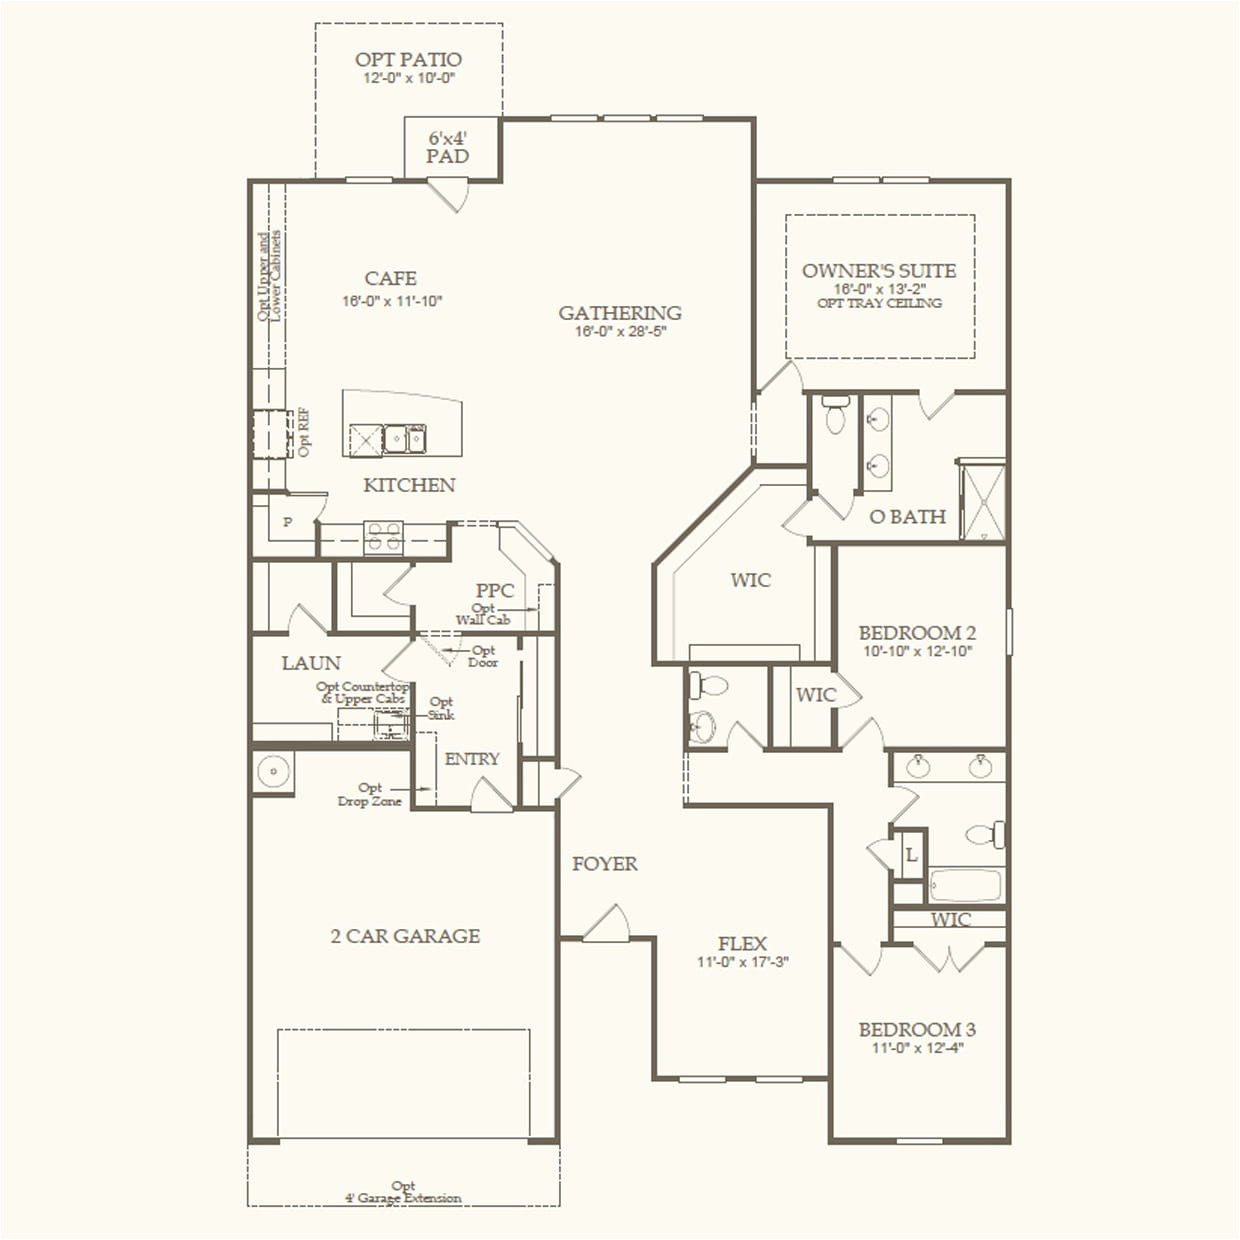 pulte homes amberwood floor plan awesome pulte homes floor plans delightful amberwood new home plan maple